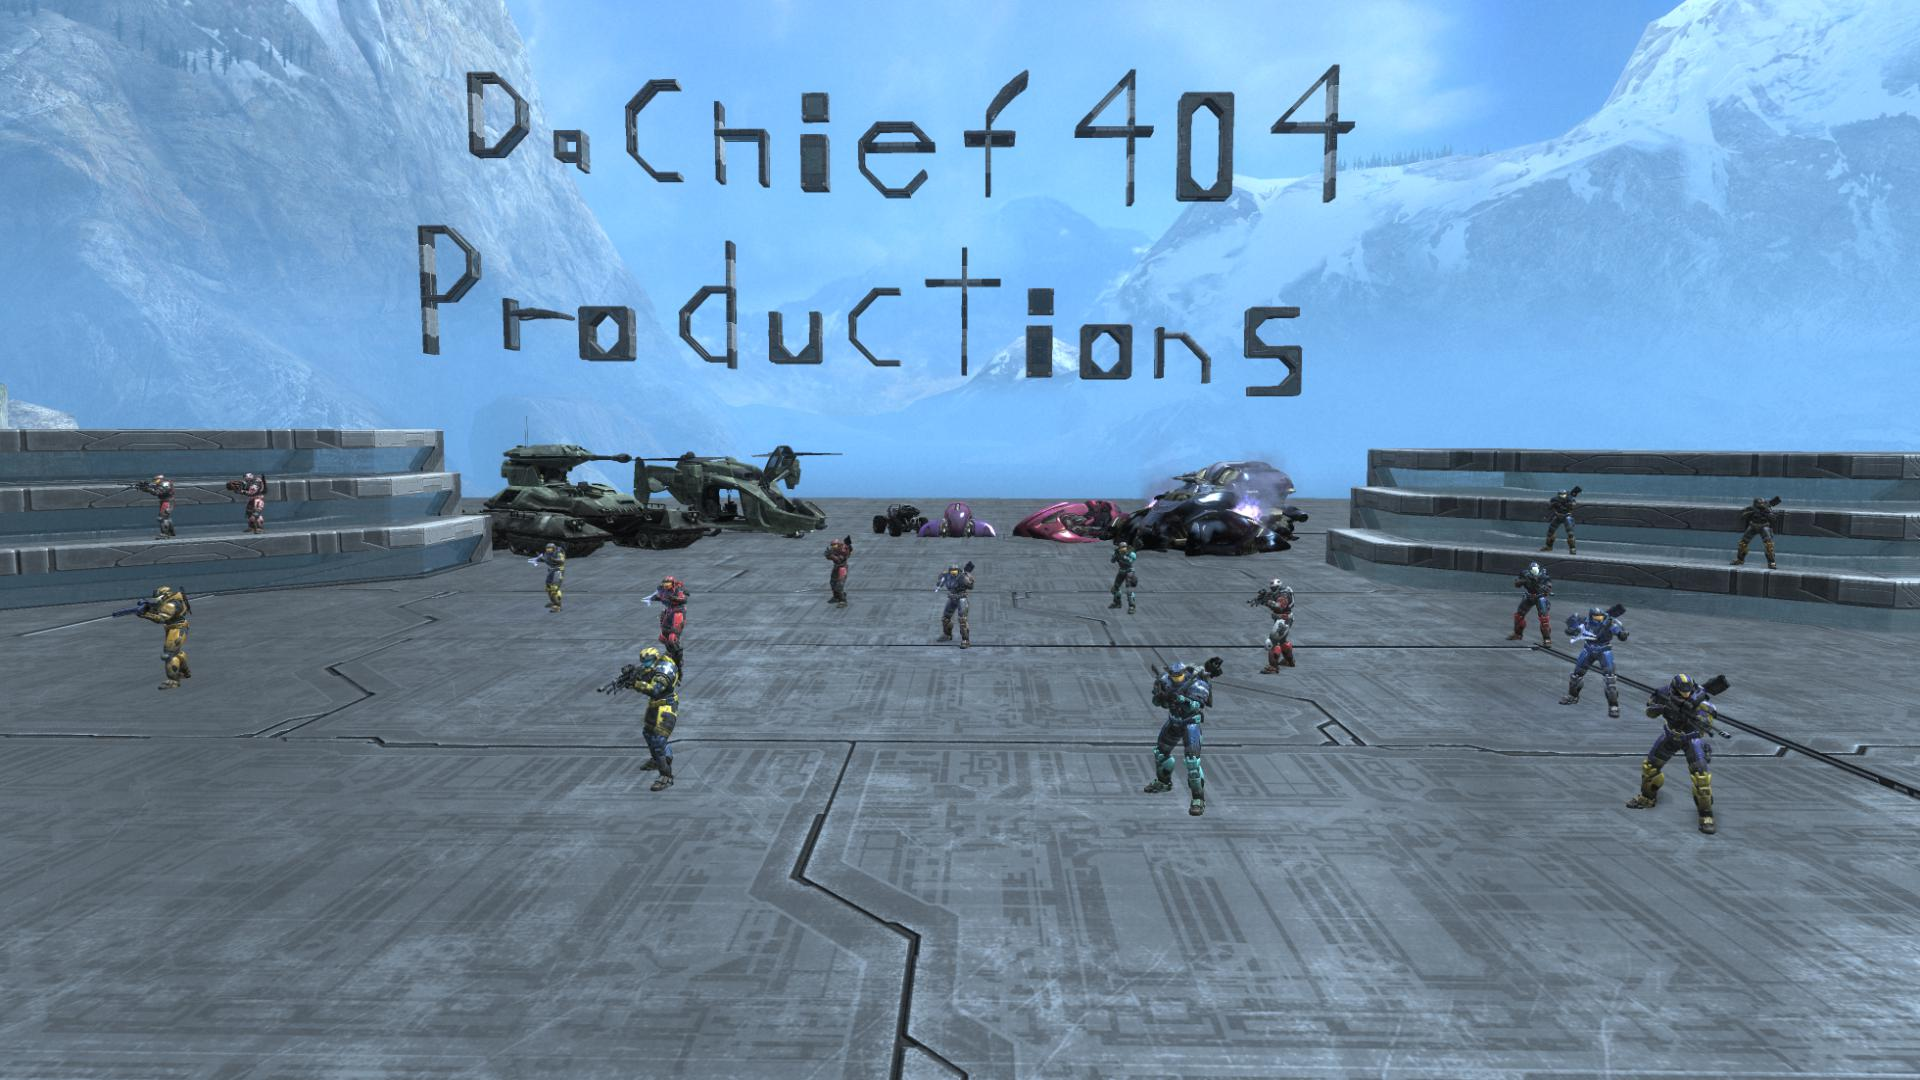 DaChief404 Productions